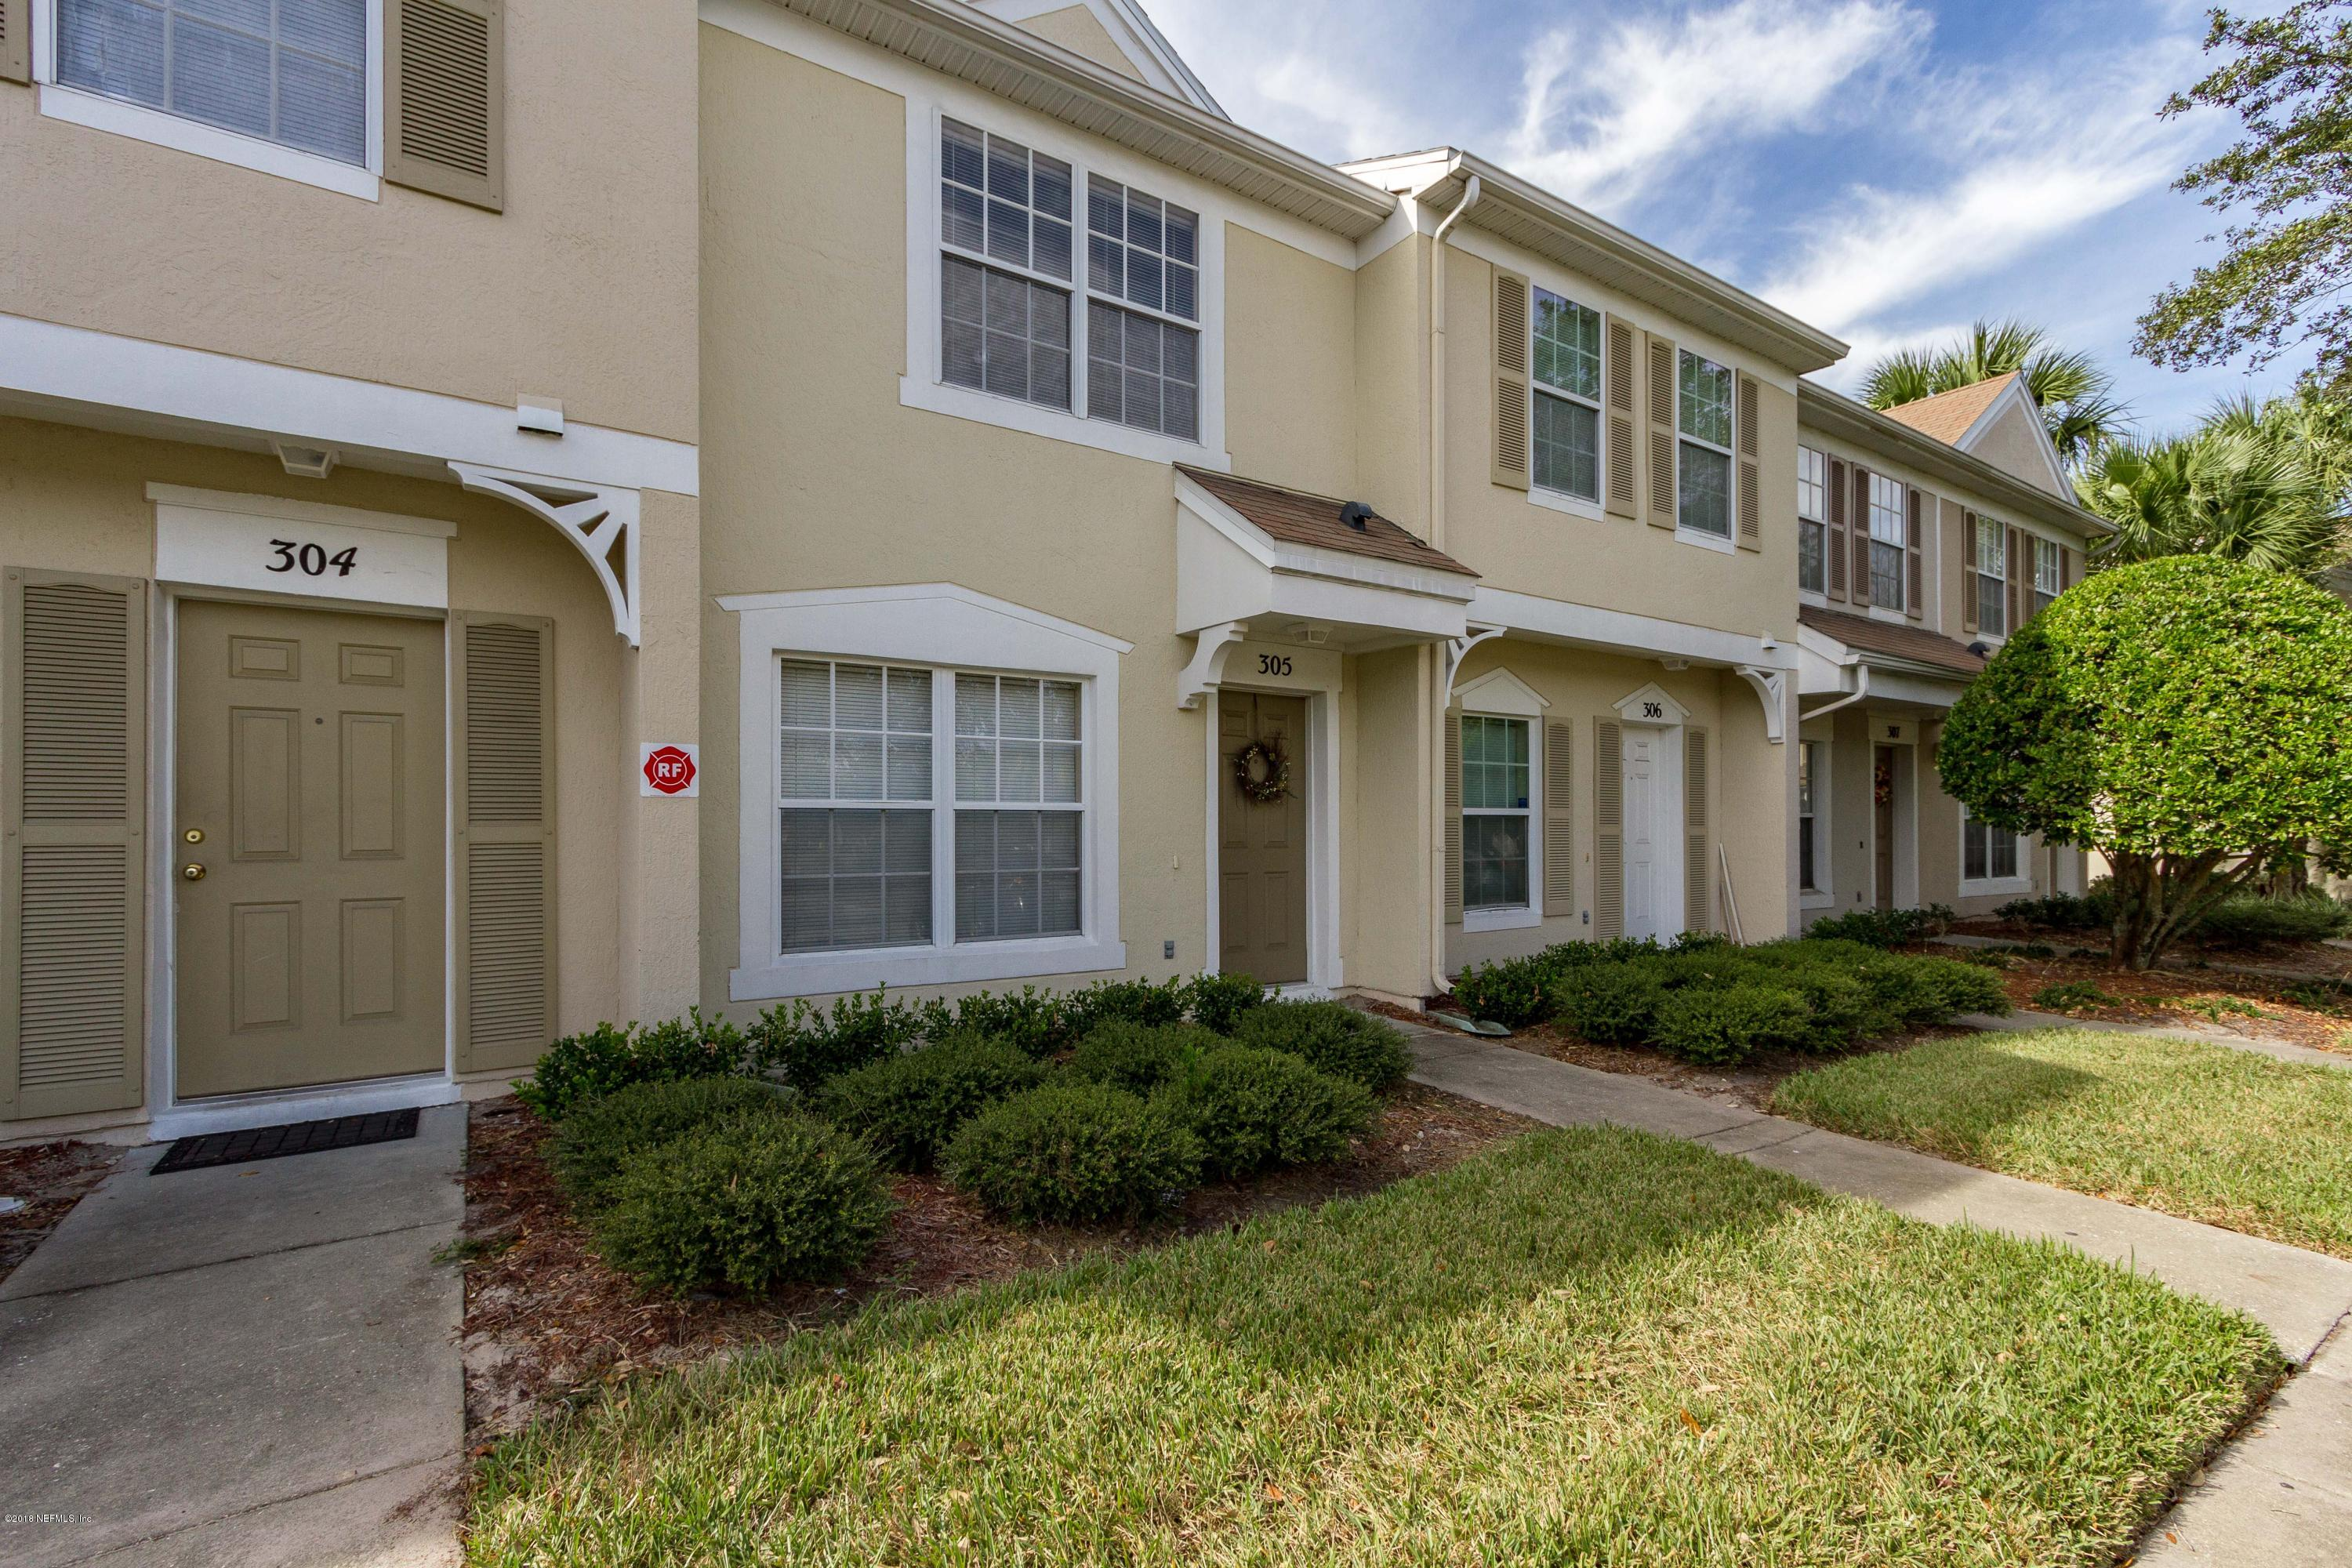 8230 DAMES POINT CROSSING, JACKSONVILLE, FLORIDA 32277, 2 Bedrooms Bedrooms, ,2 BathroomsBathrooms,Residential - condos/townhomes,For sale,DAMES POINT CROSSING,965162